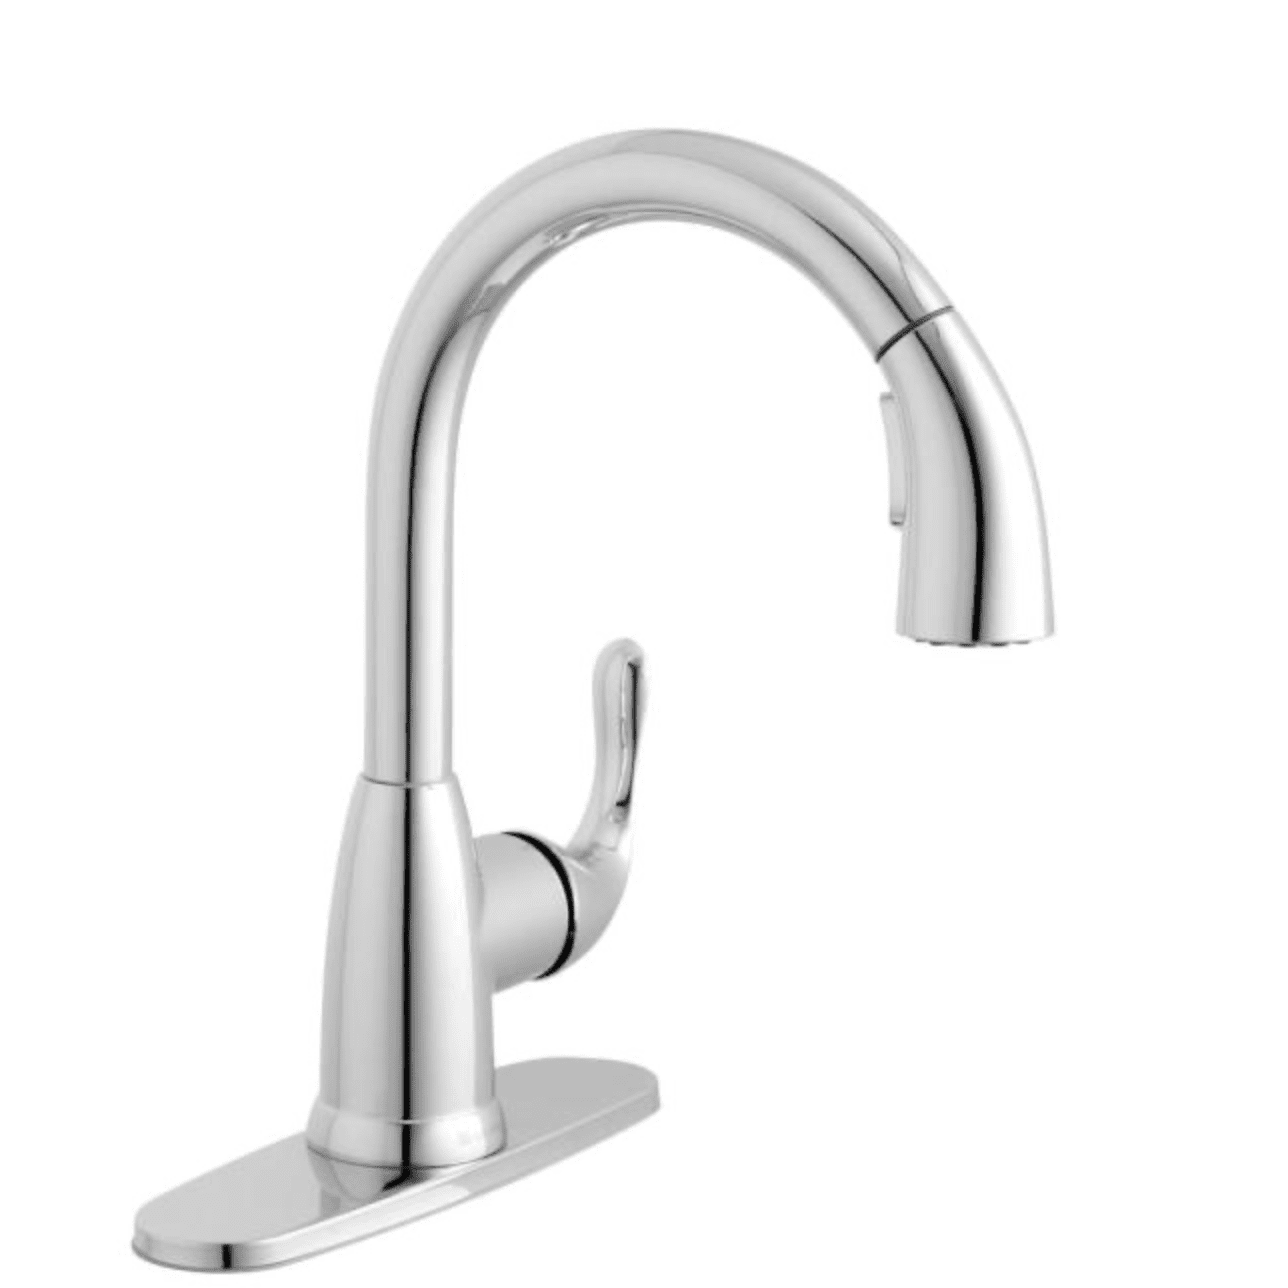 Home Depot: Kitchen Faucets, Sinks And Towels for Sale